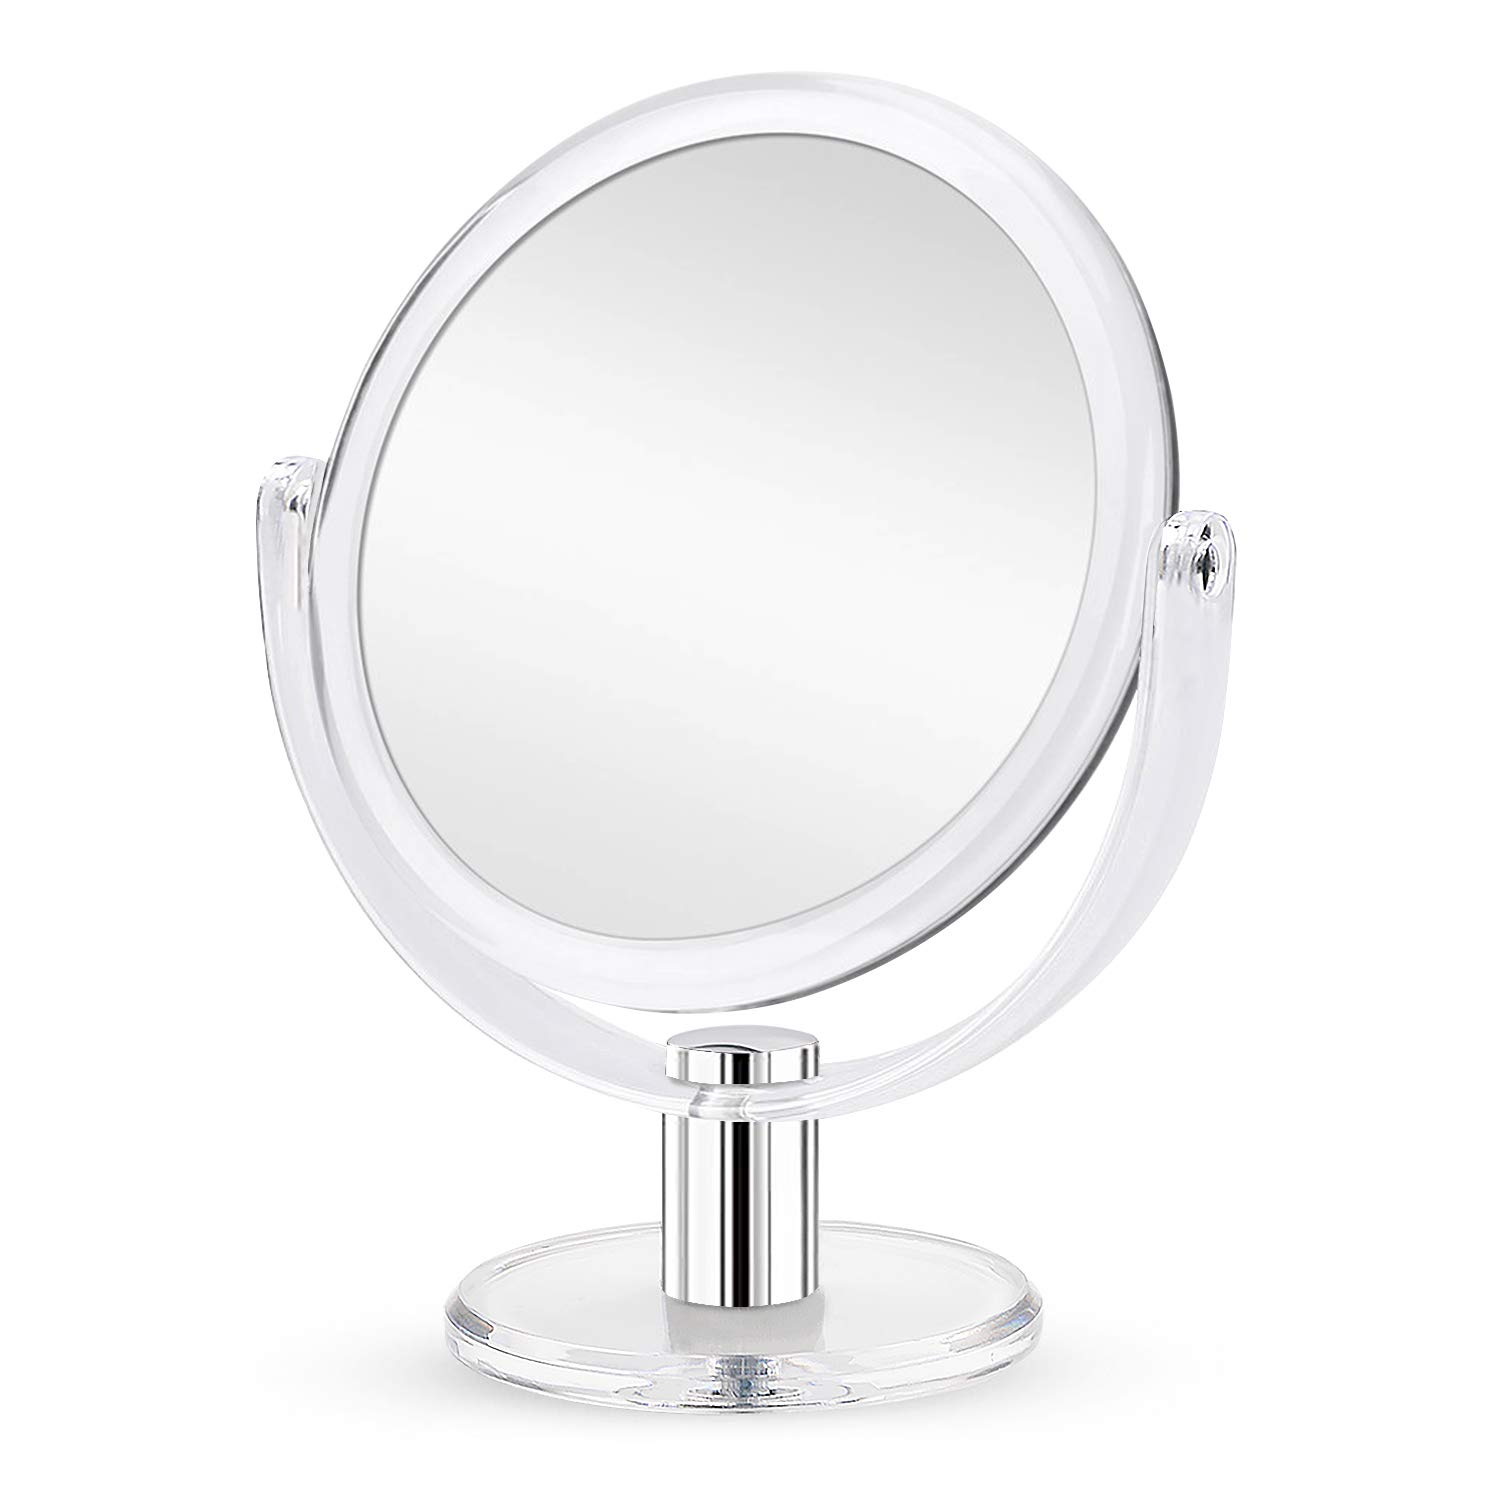 Double Sided Magnifying Makeup Mirror, 1X & 10X Magnification Mirror with Stand - 7 inch